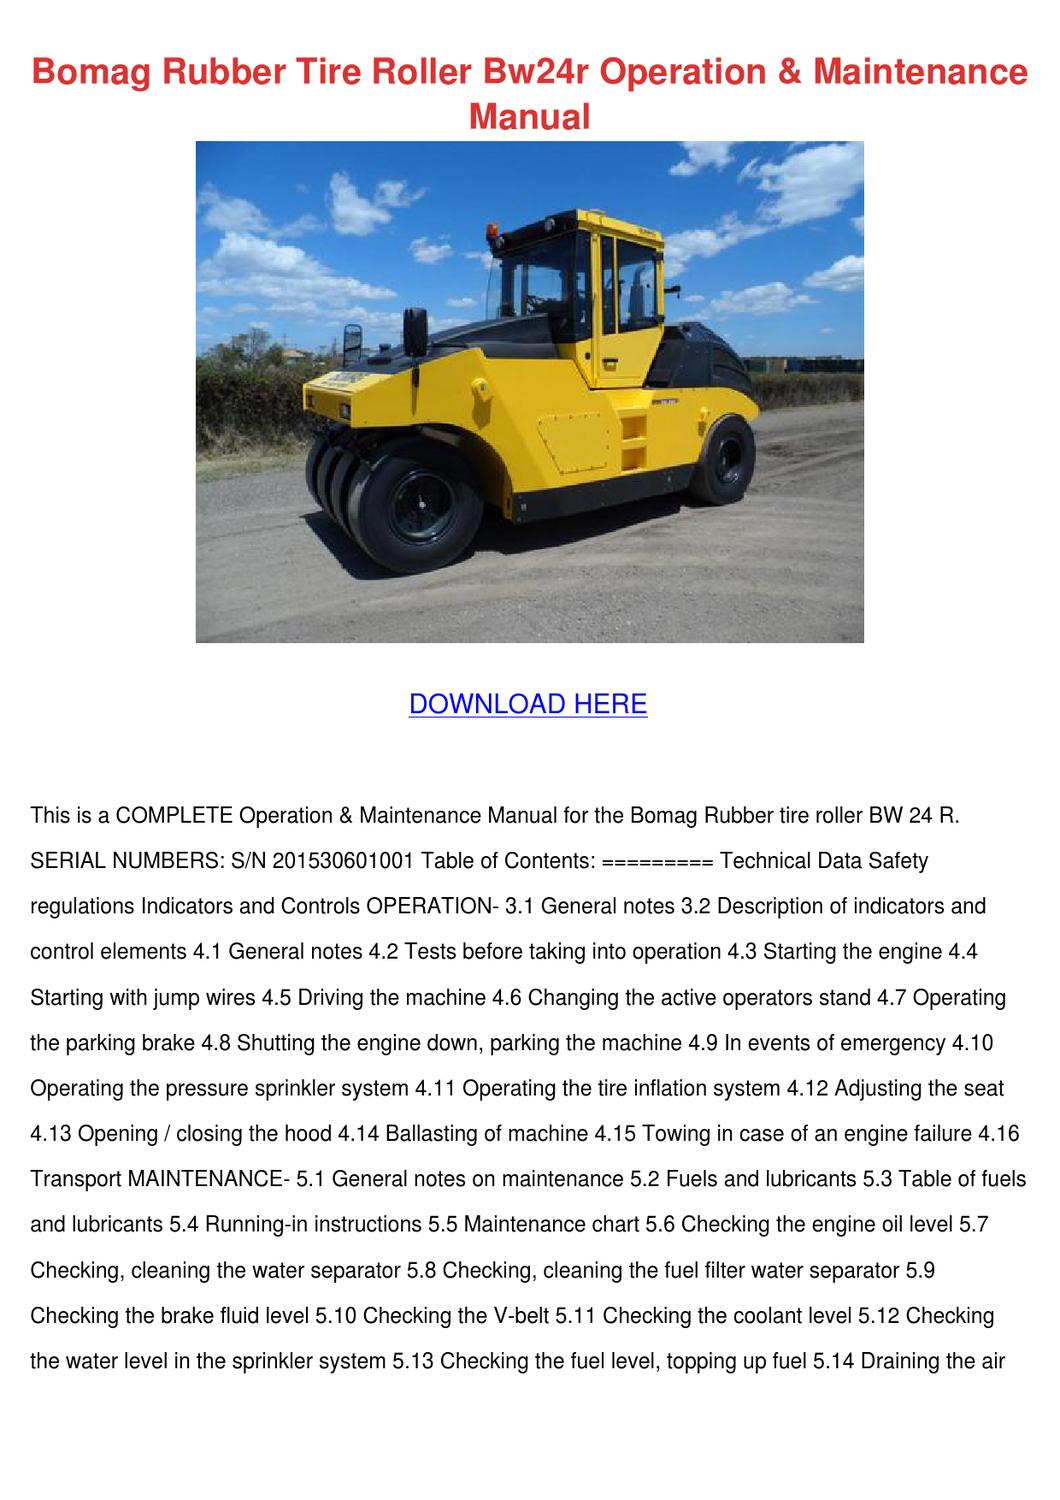 Bomag Rubber Tire Roller Bw24r Operation Main by ArmandoAlonso - issuu